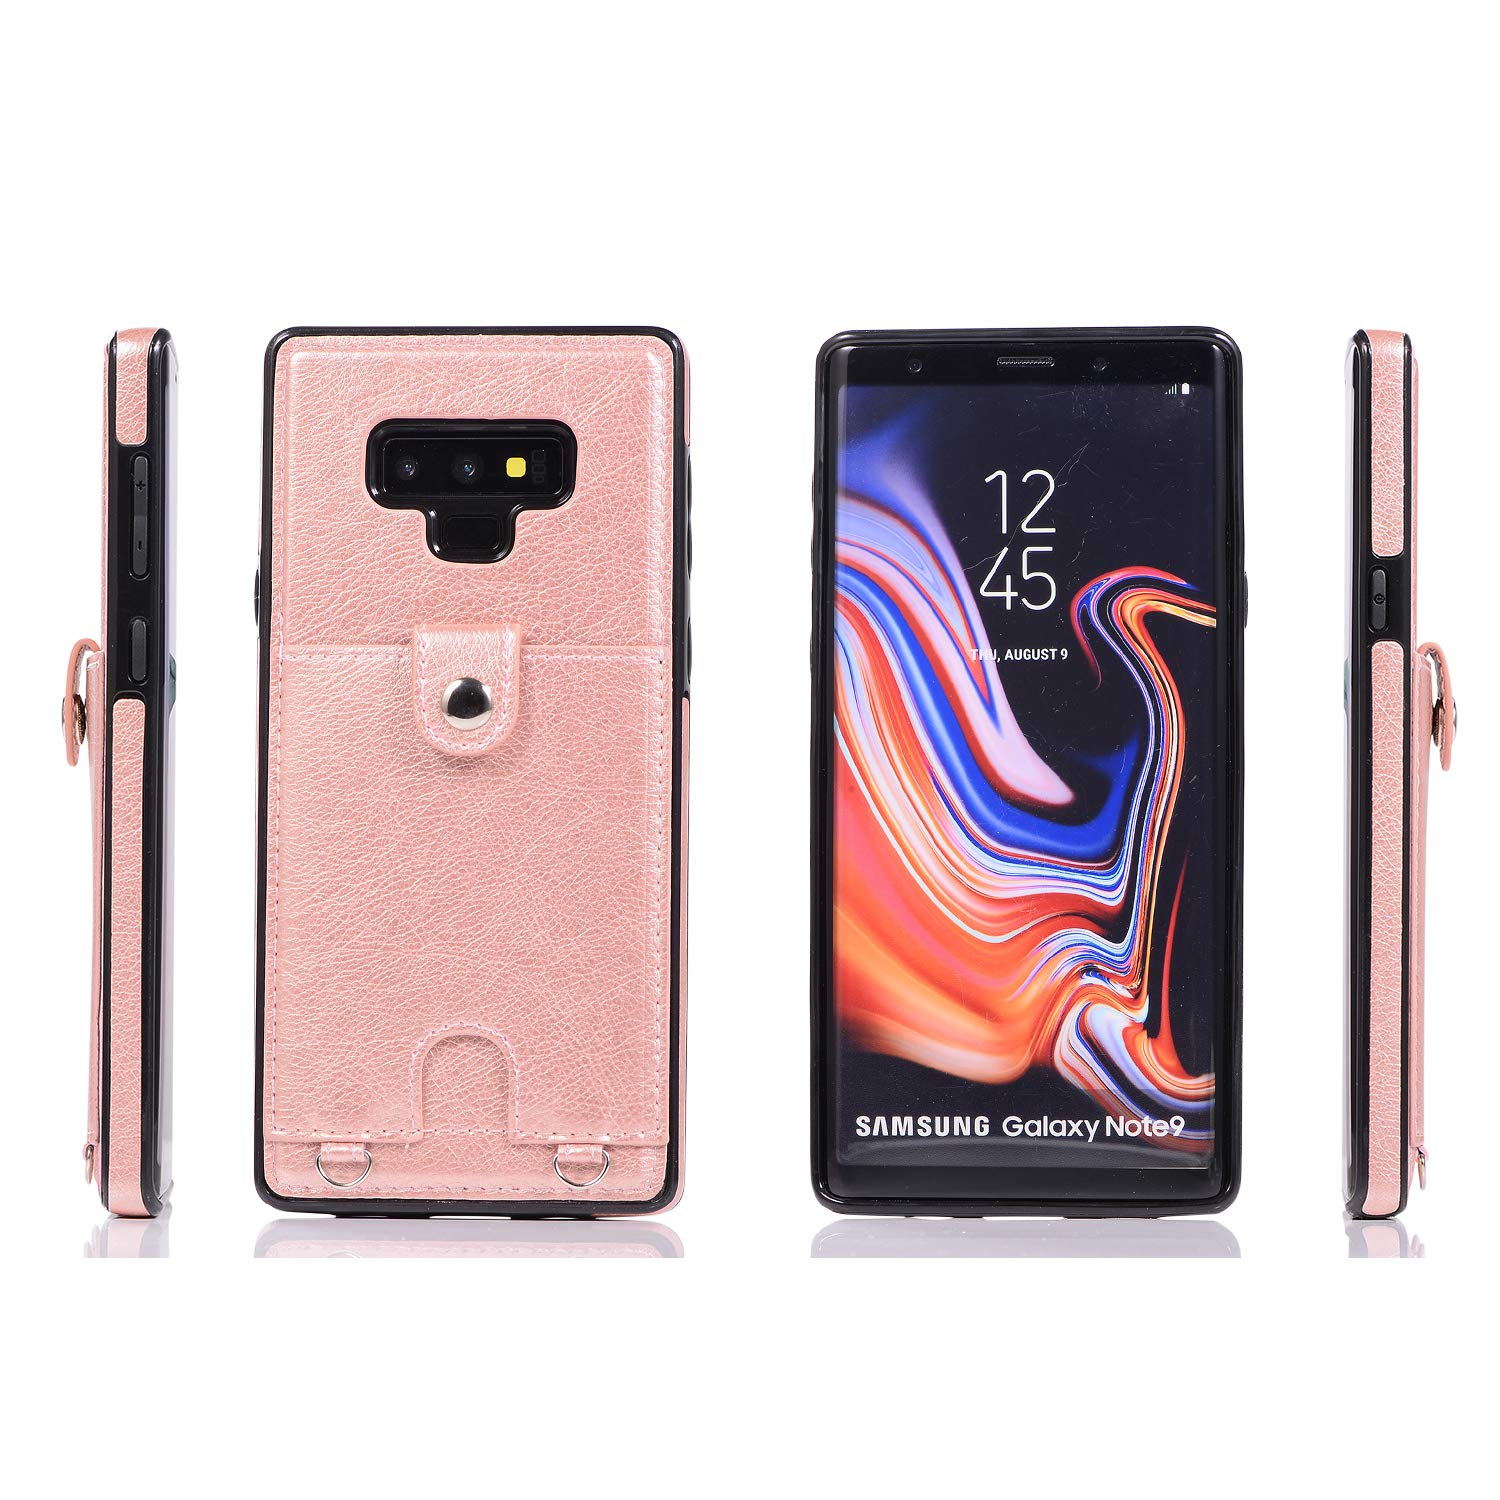 37850c4a76f9 Galaxy Note 9 PU Wallet Cover Card Holder Slot Protect Crossbody Chain  Strap 6.4